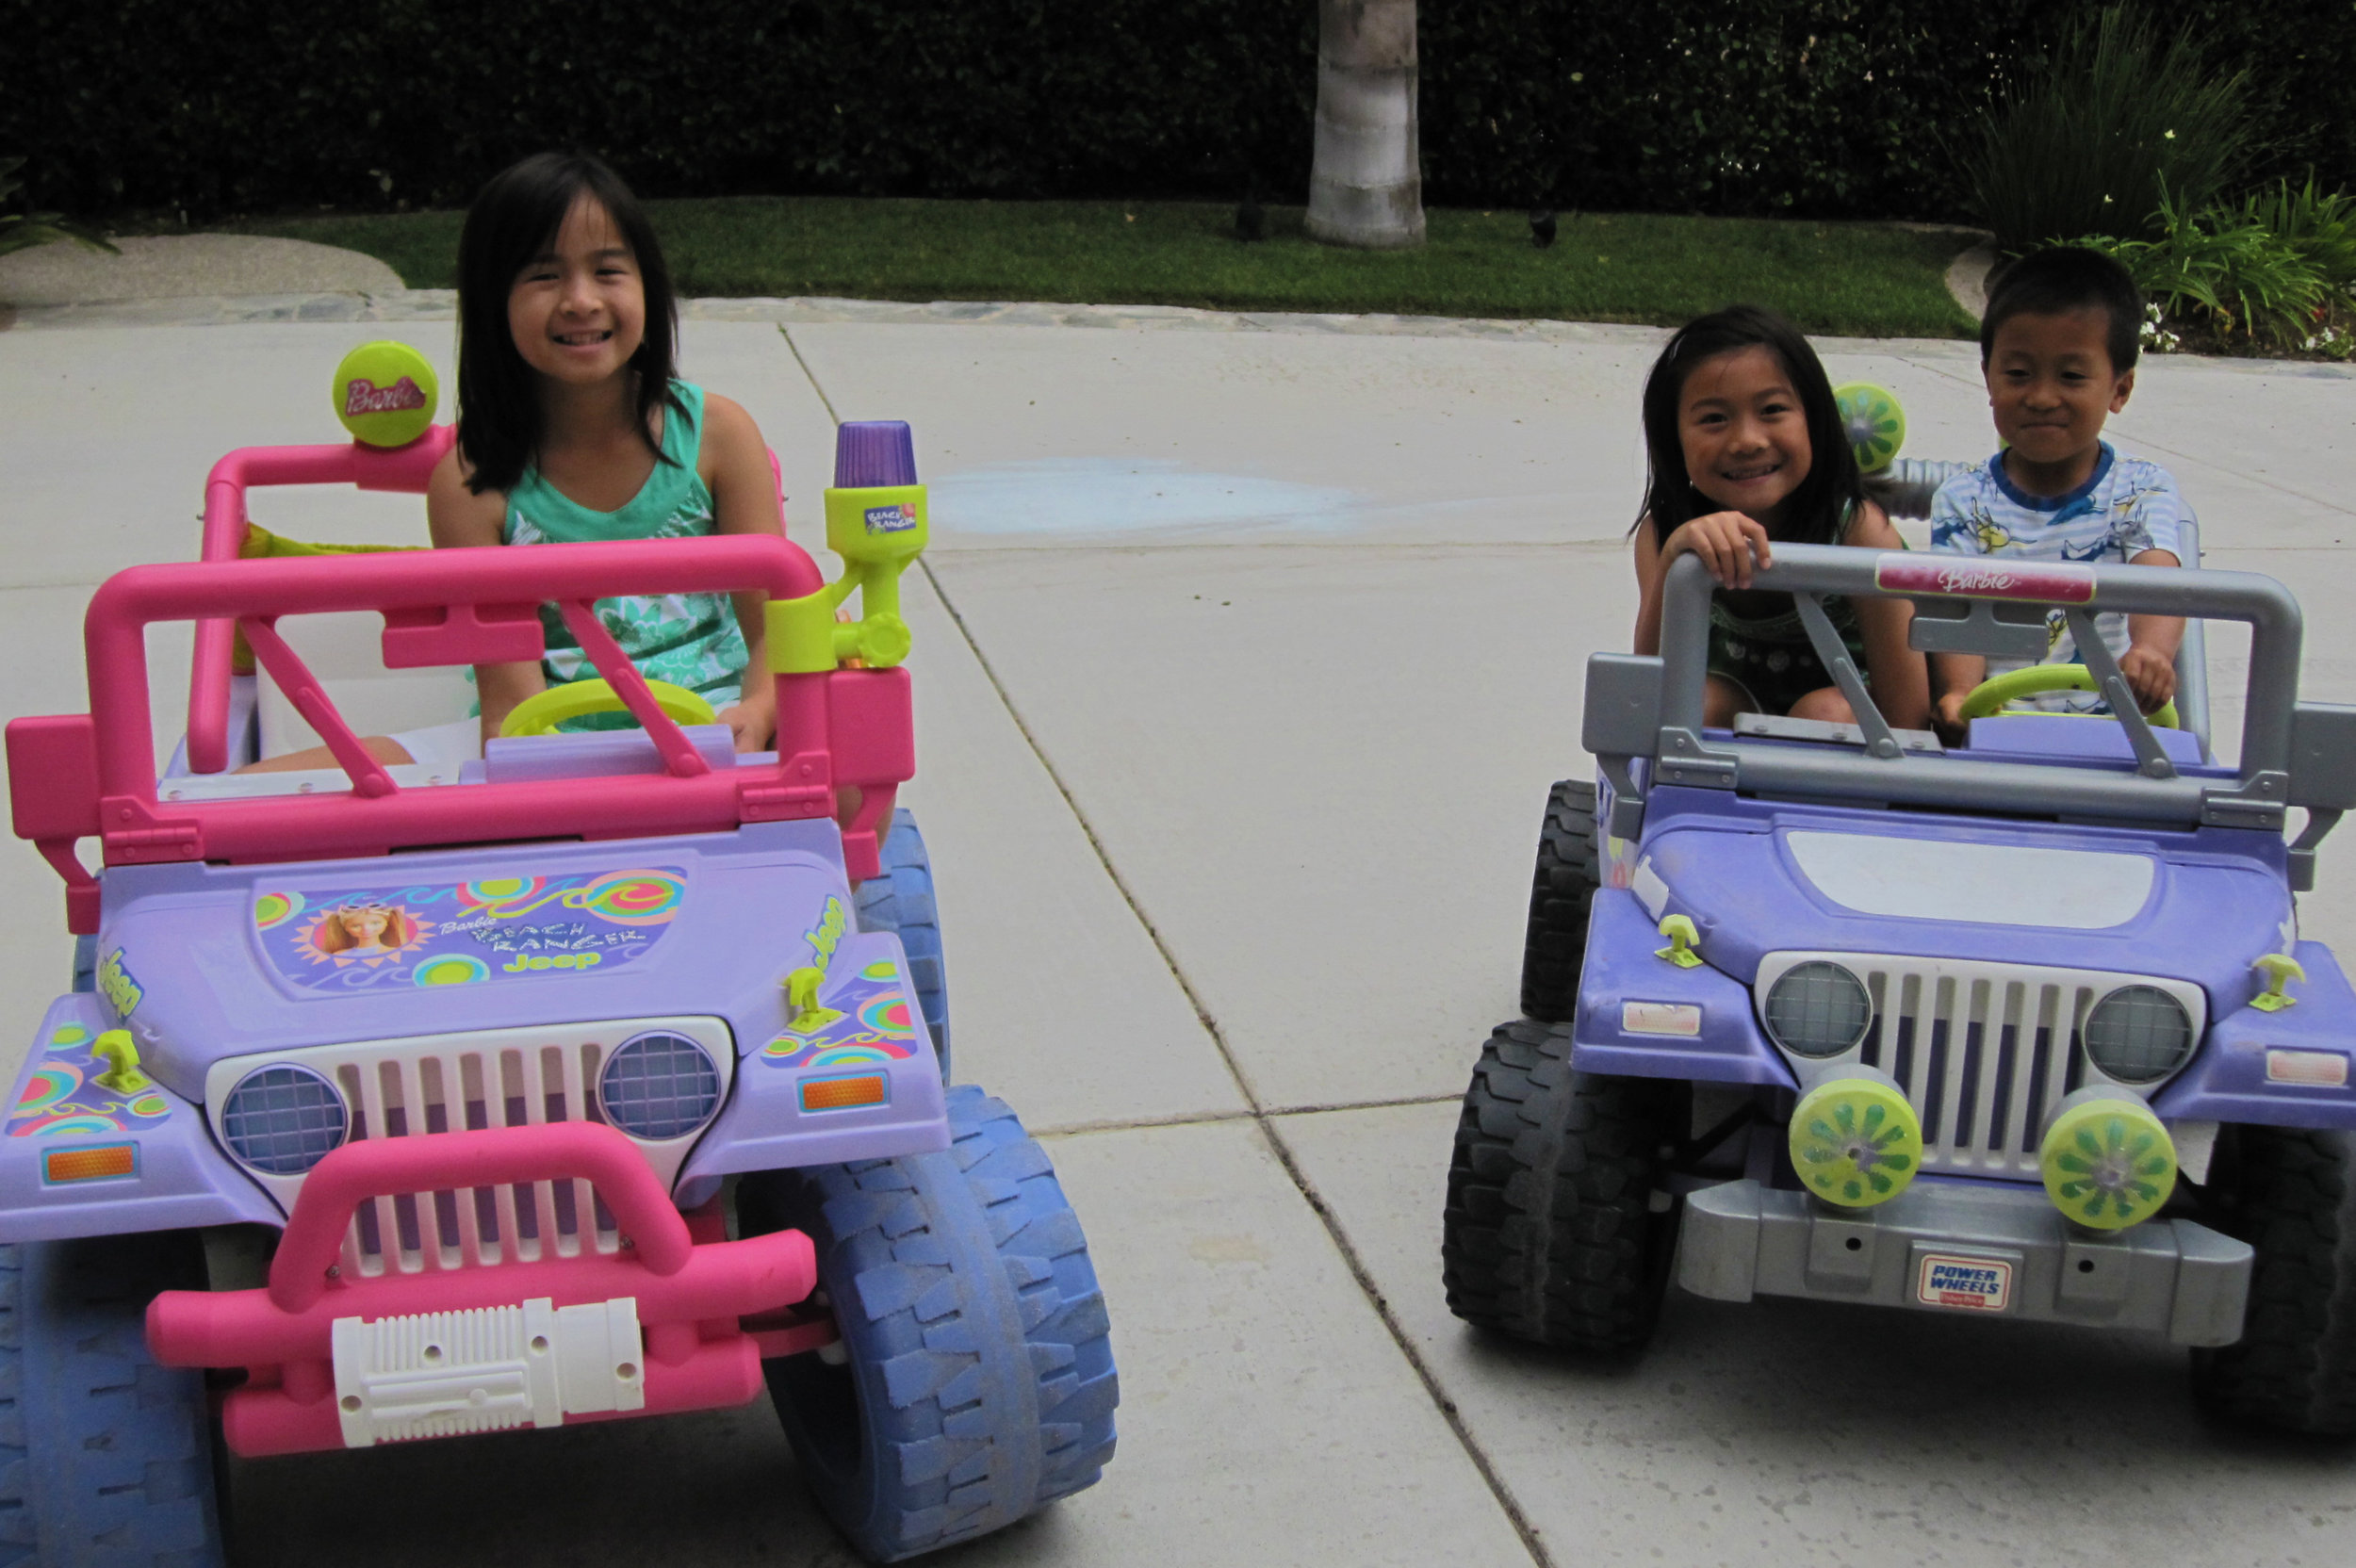 Kate, Caroline, and Alex in the Barbie Jeeps, c.2010